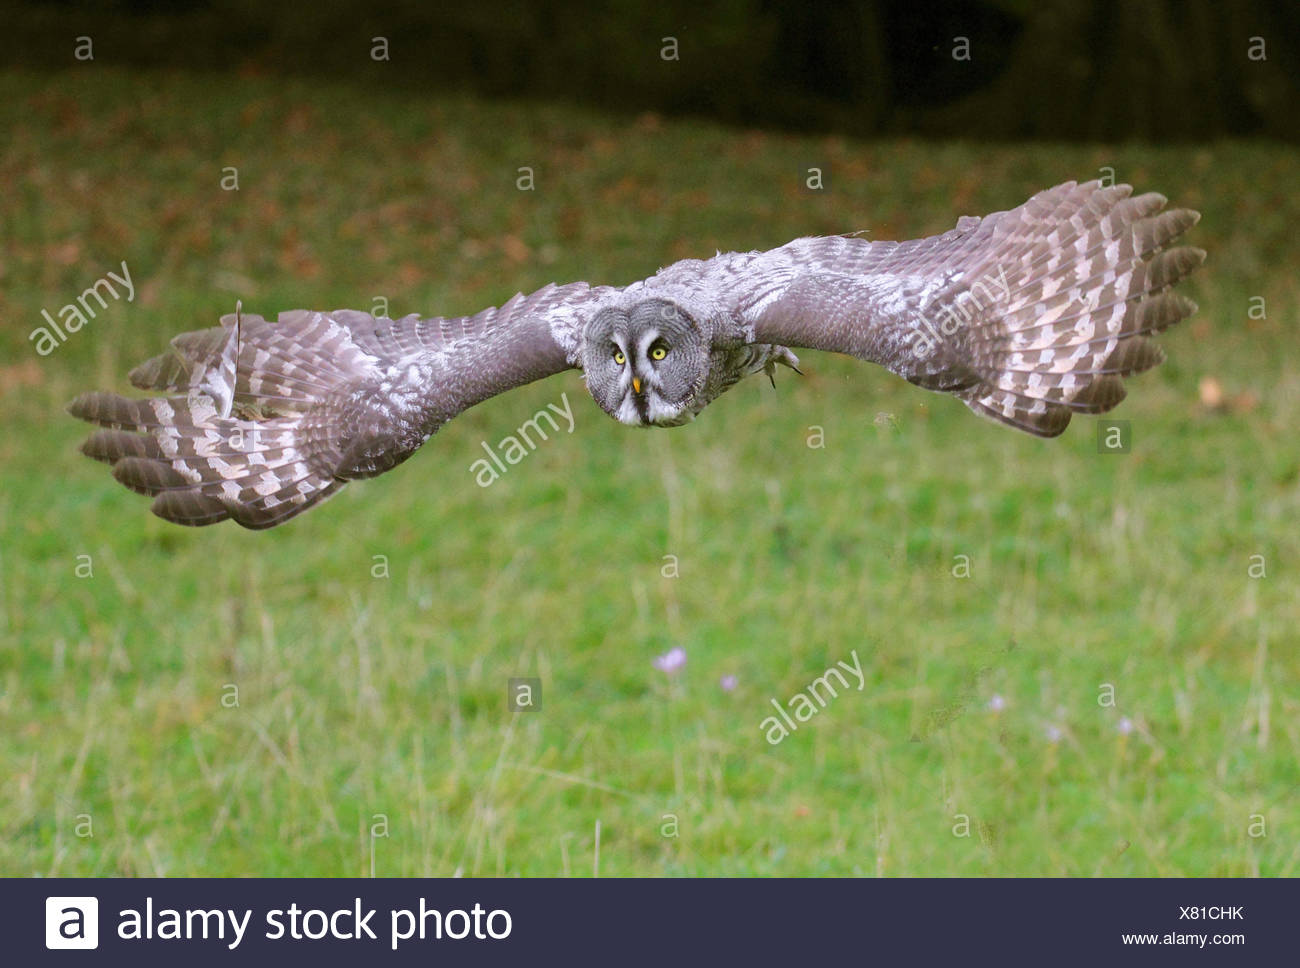 great grey owl (Strix nebulosa), in flight over a meadow - Stock Image